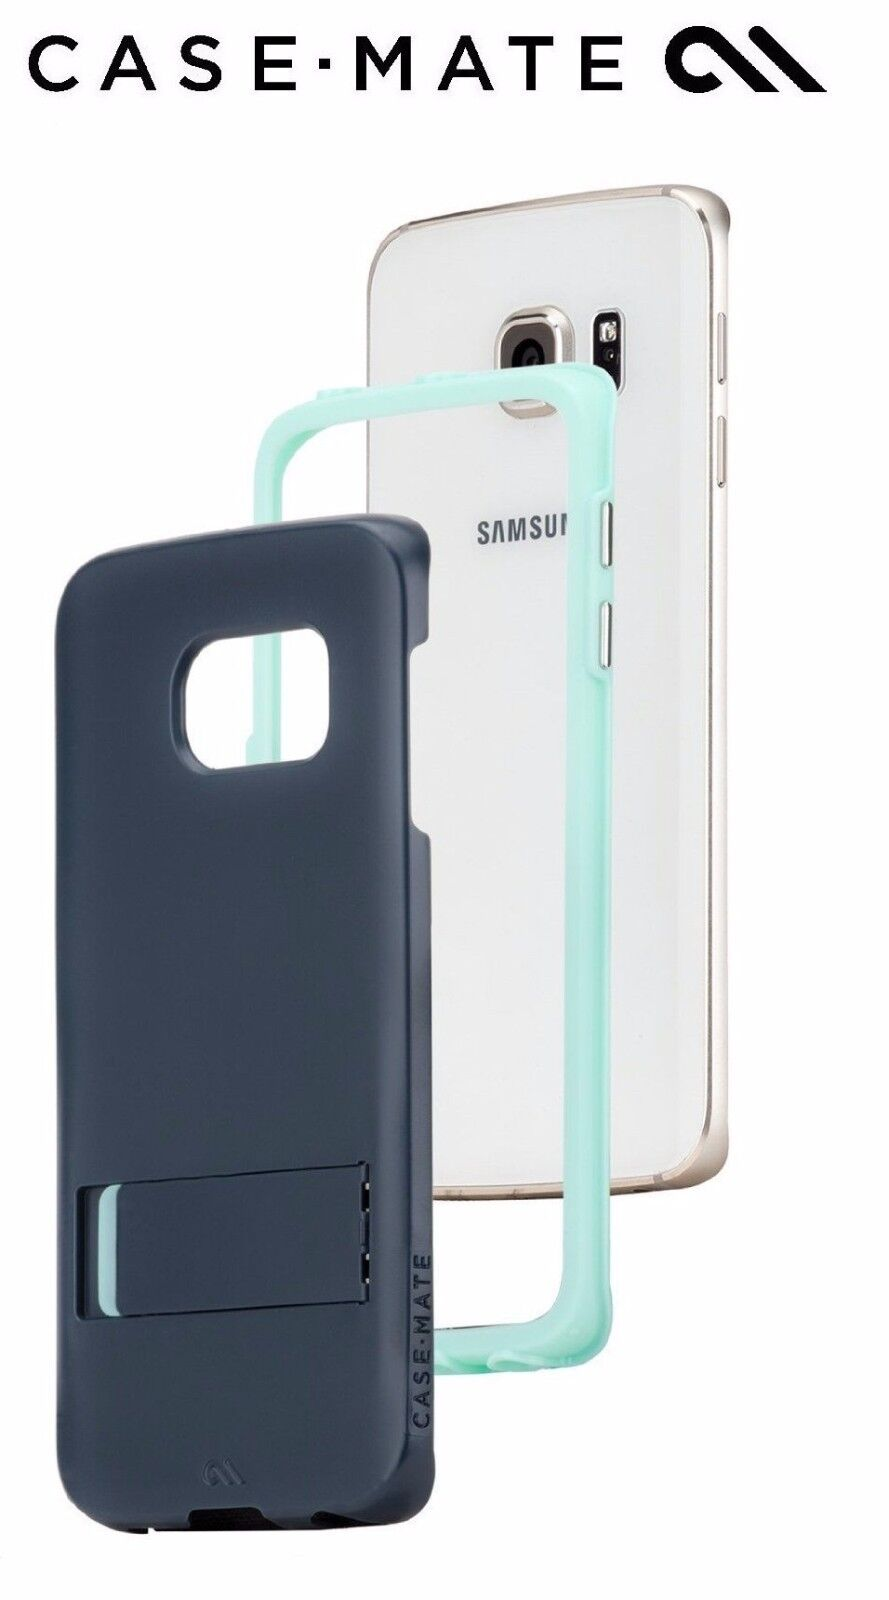 Case Mate Tough Stand Case Cover Kickstand For Samsung Galaxy S6 Edge Teal